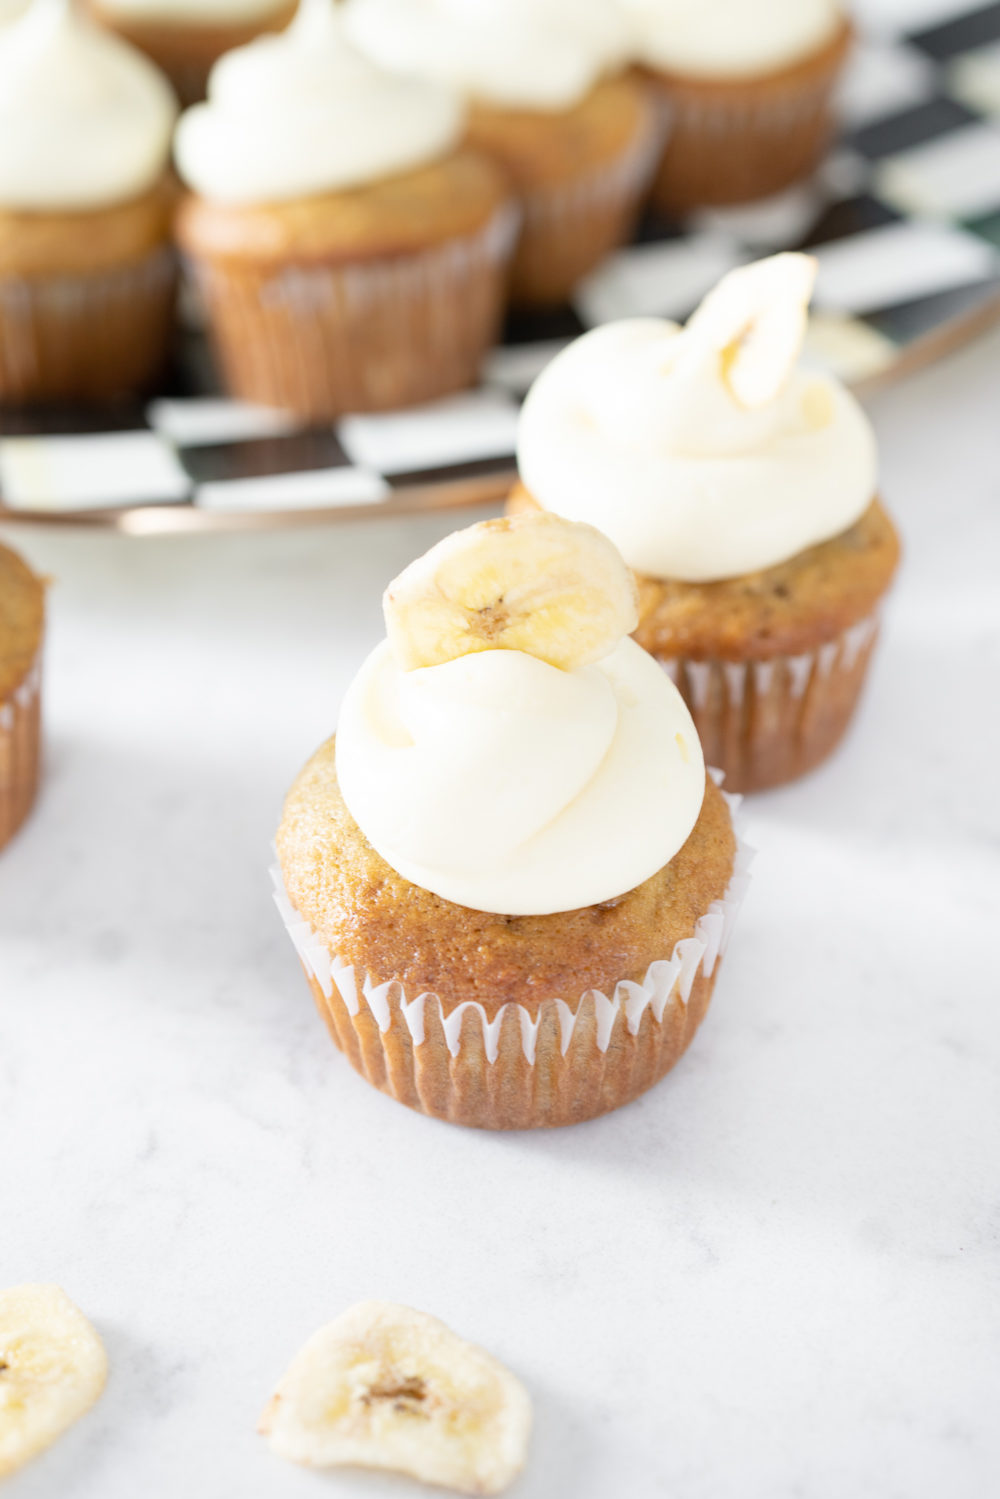 Petite Fashion Blog | Mackenzie Childs Royal Check | Banana Cupcakes with Cream Cheese Frosting